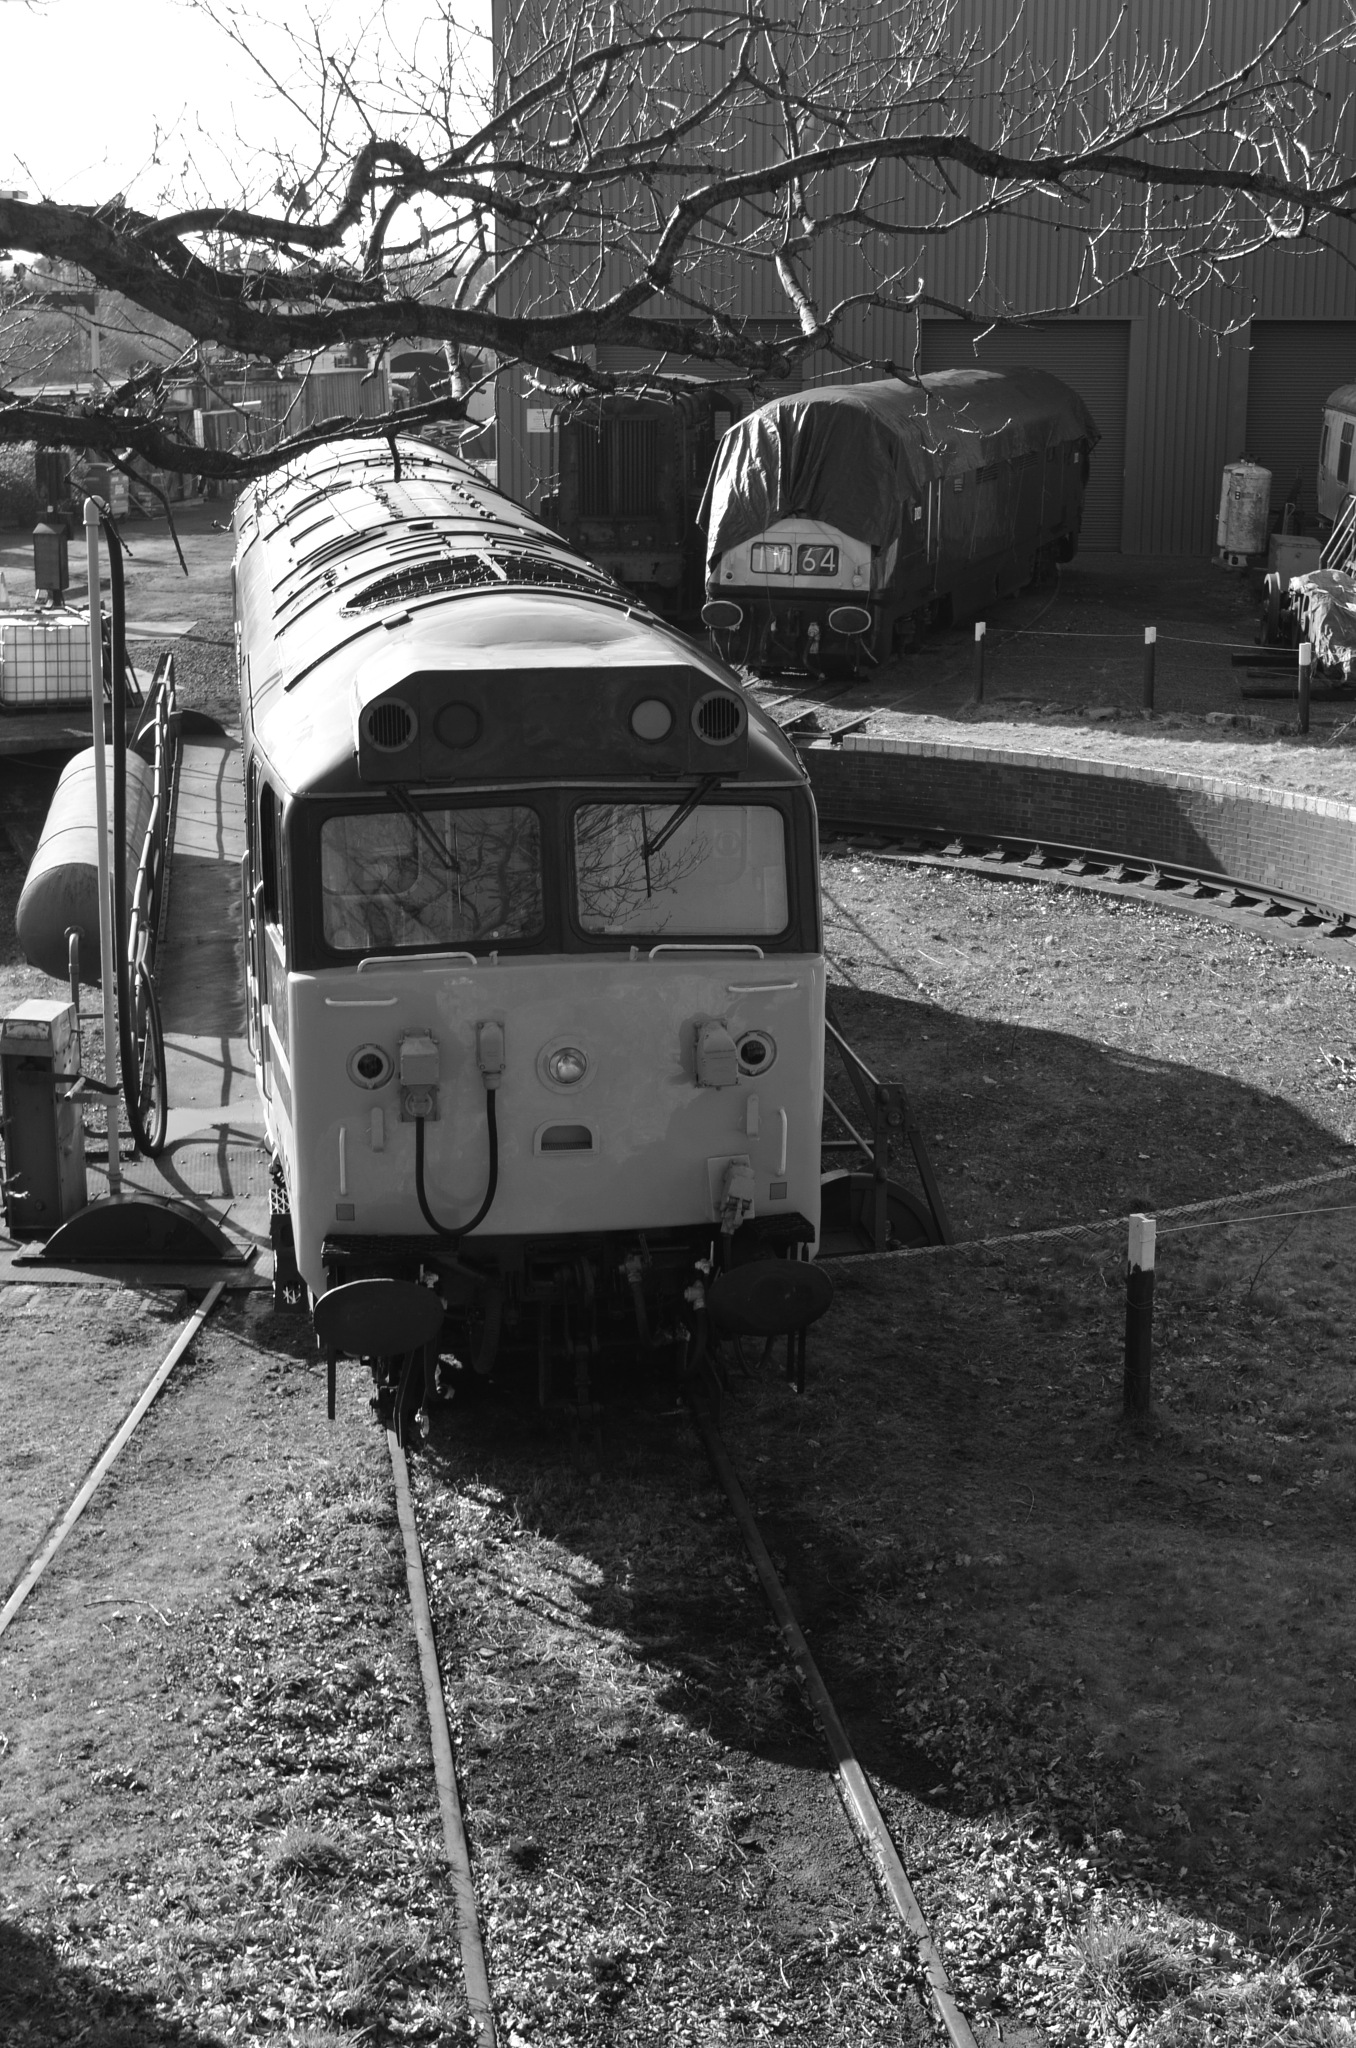 Hood parked ready to go  by adrian.williams.58323